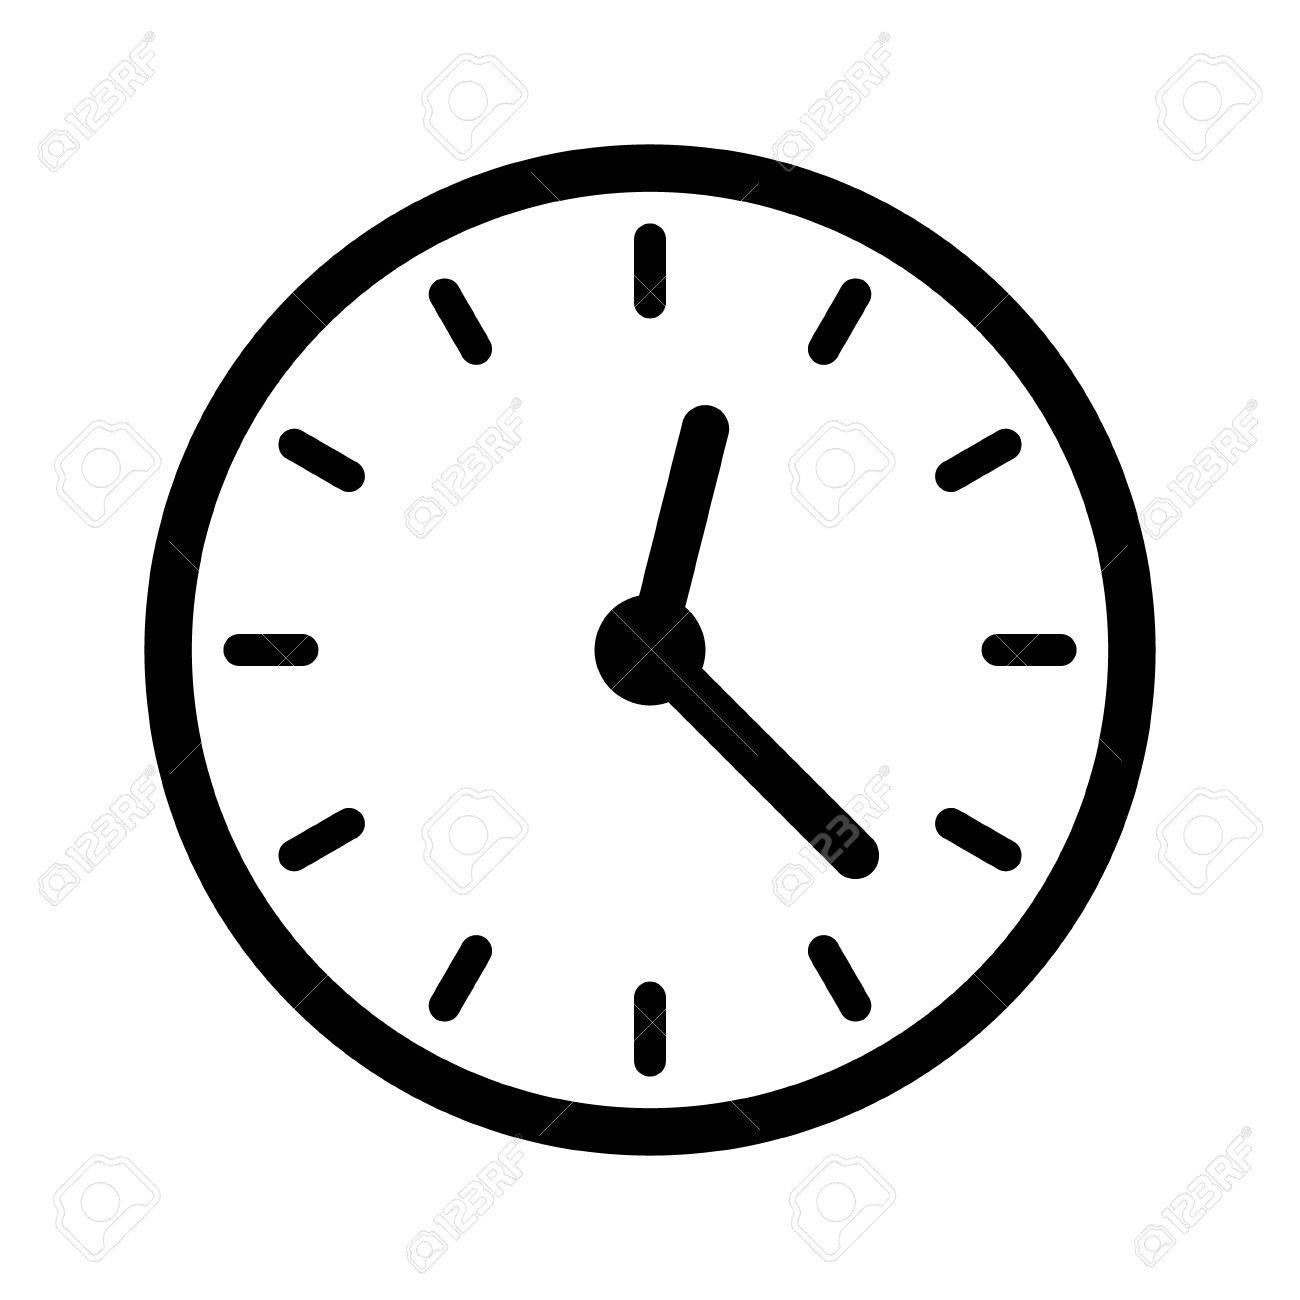 Clock Face Clockface Or Watch Face With Hands Line Art Icon